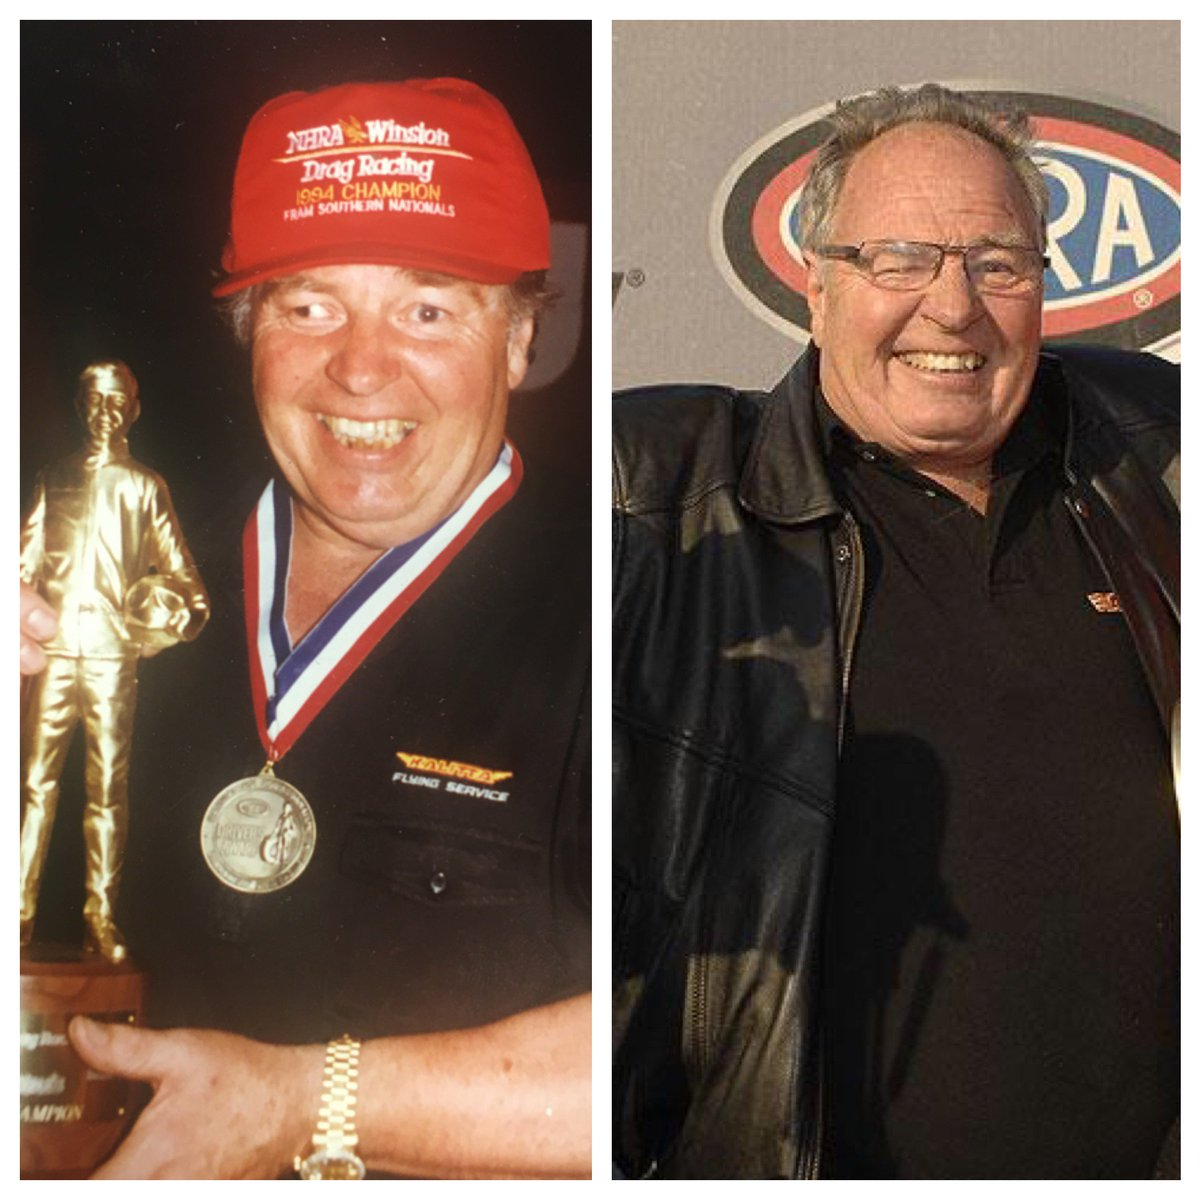 The legend is celebrating his 78th birthday today. #HappyBirthday Connie! #NHRA #KalittaStrong https://t.co/iEYvoMIup7